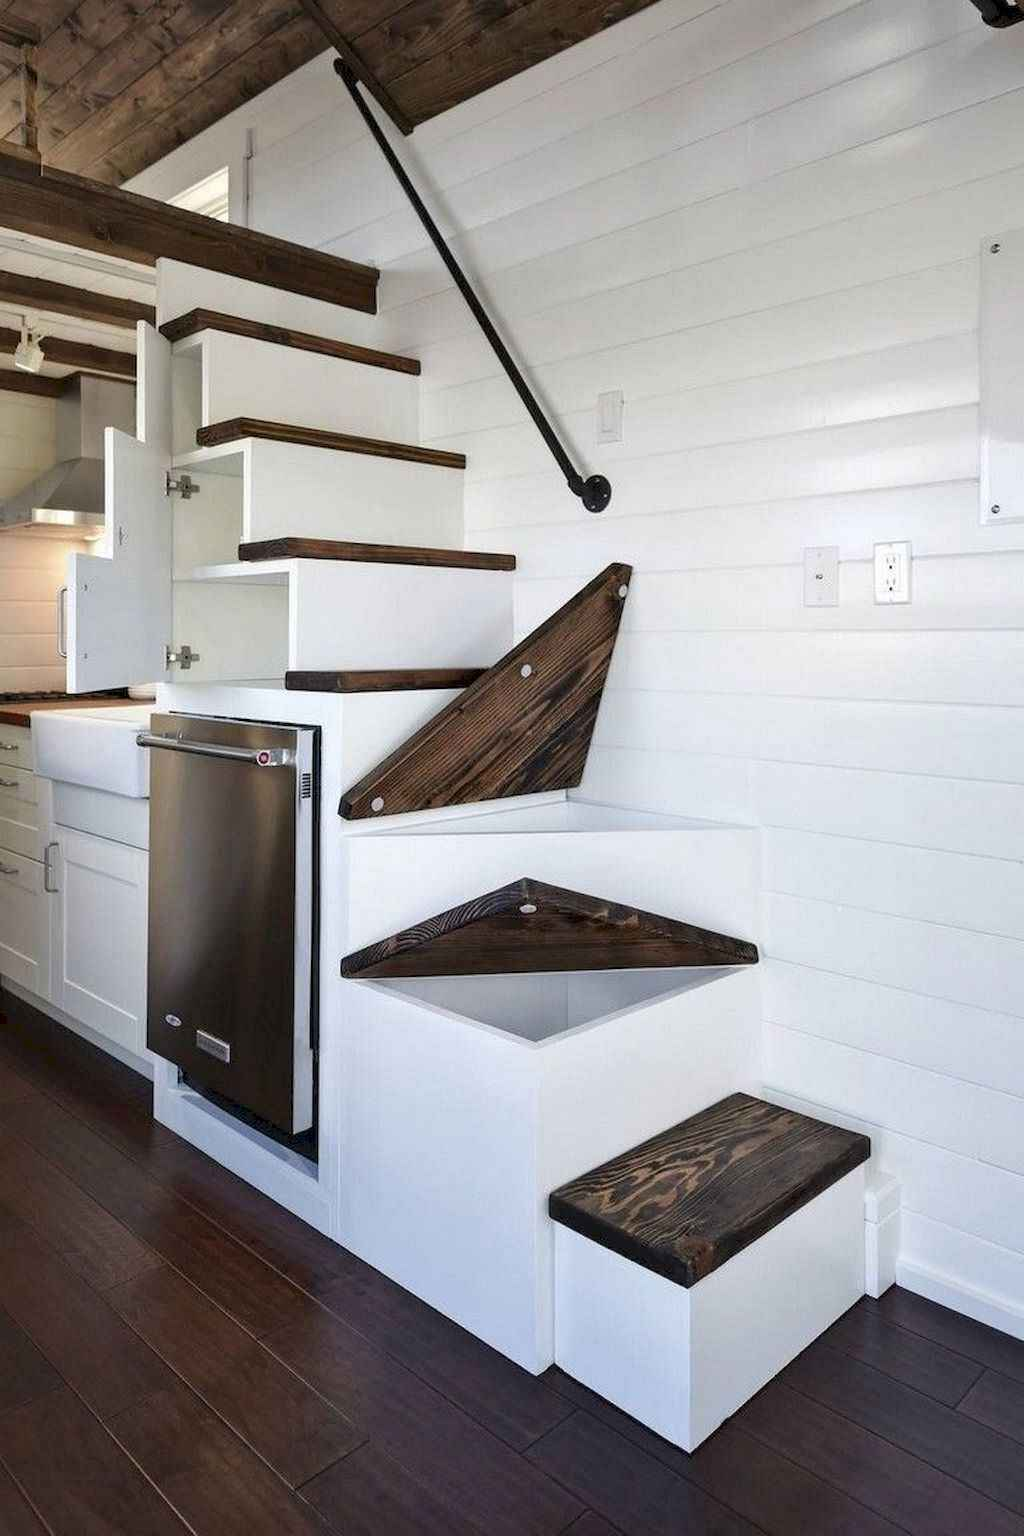 44 Tiny House Kitchen Storage Organization and Tips Ideas